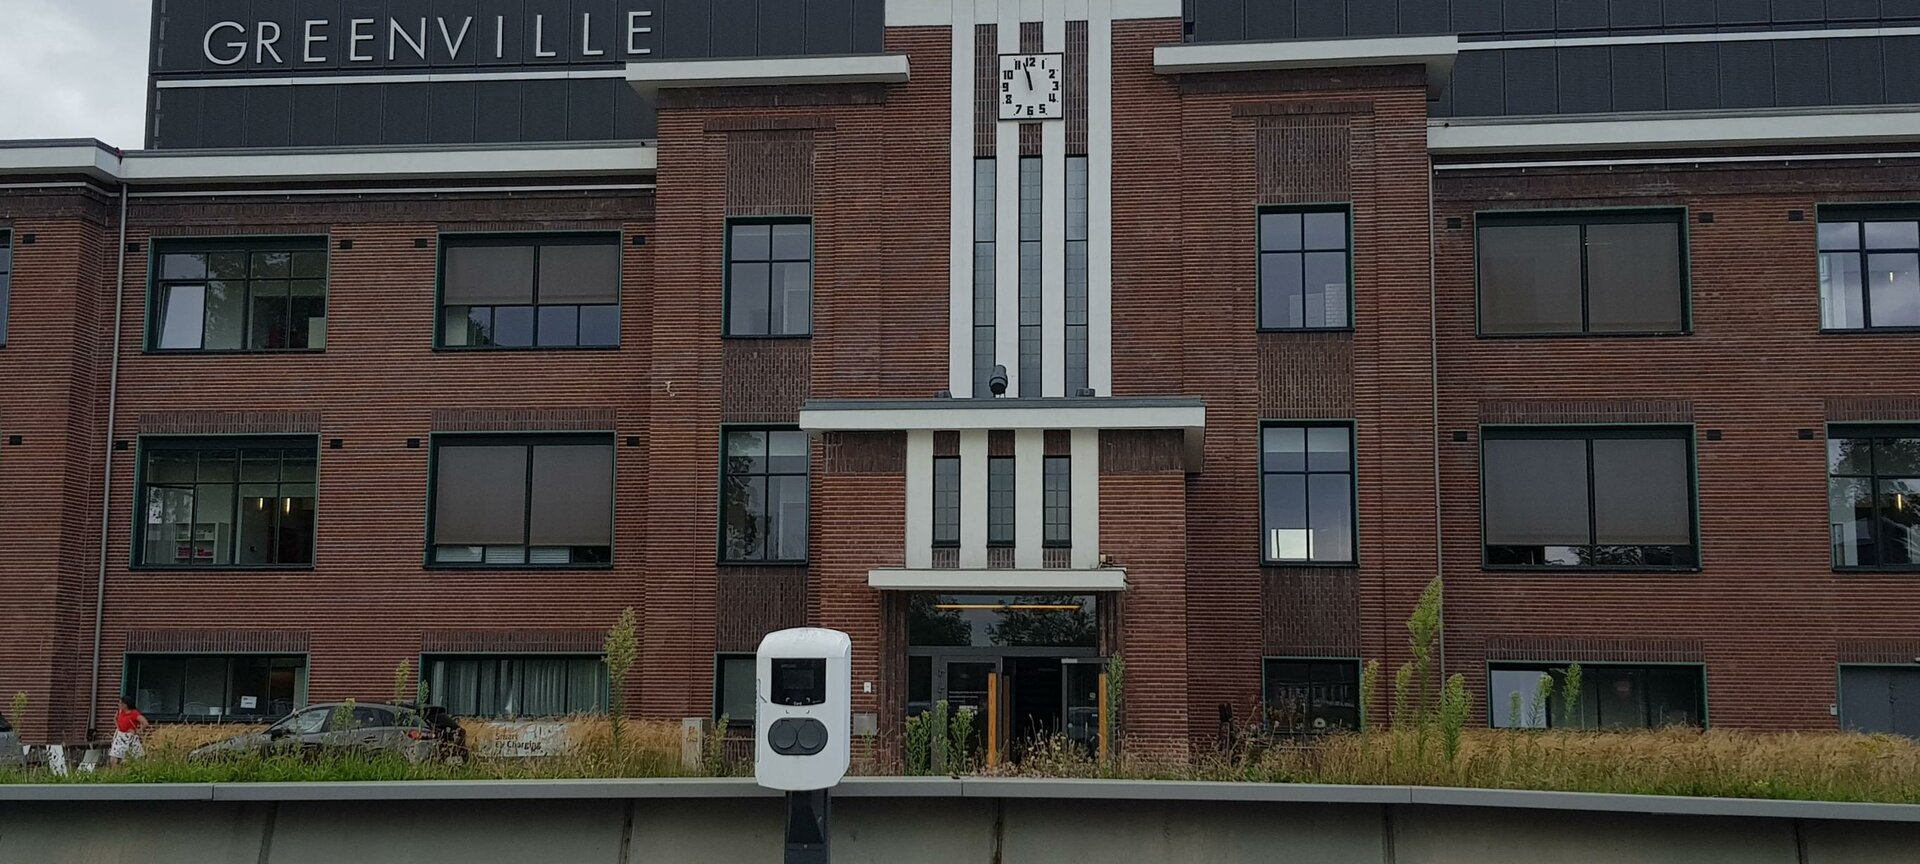 Greenville, cleantech dienstencentrum - Voorgevel Greenville